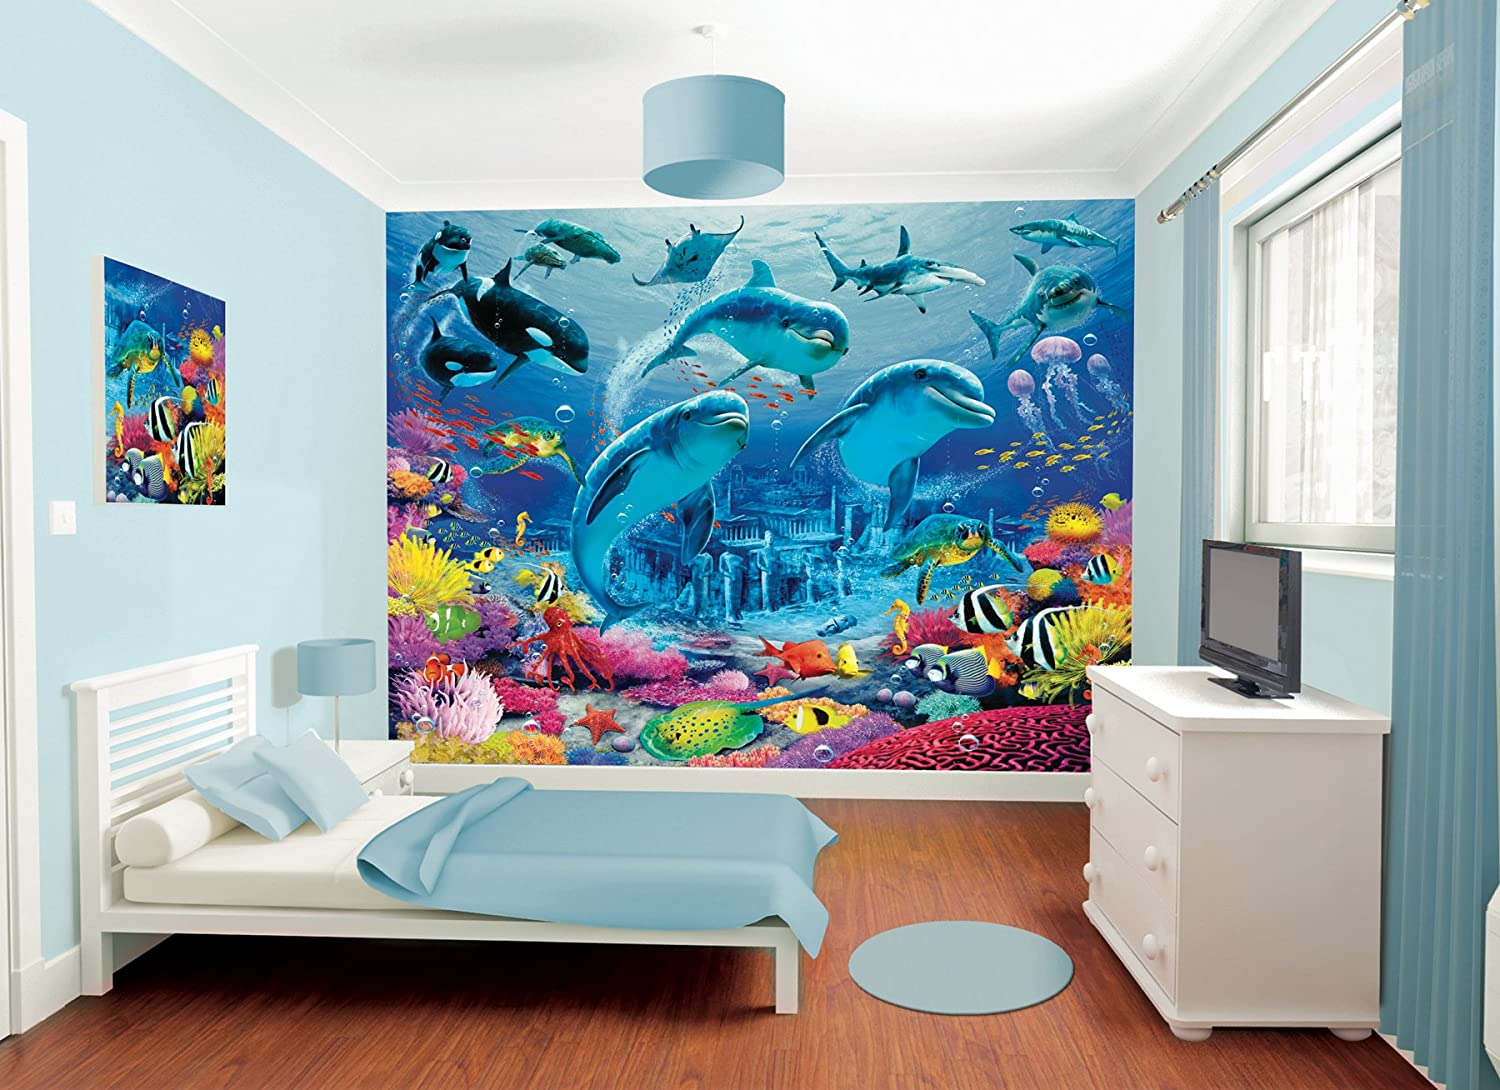 Marvelous Walltastic Sea Adventure Wallpaper Mural 8ft X 10ft: Amazon.co.uk: Kitchen  U0026 Home Part 9